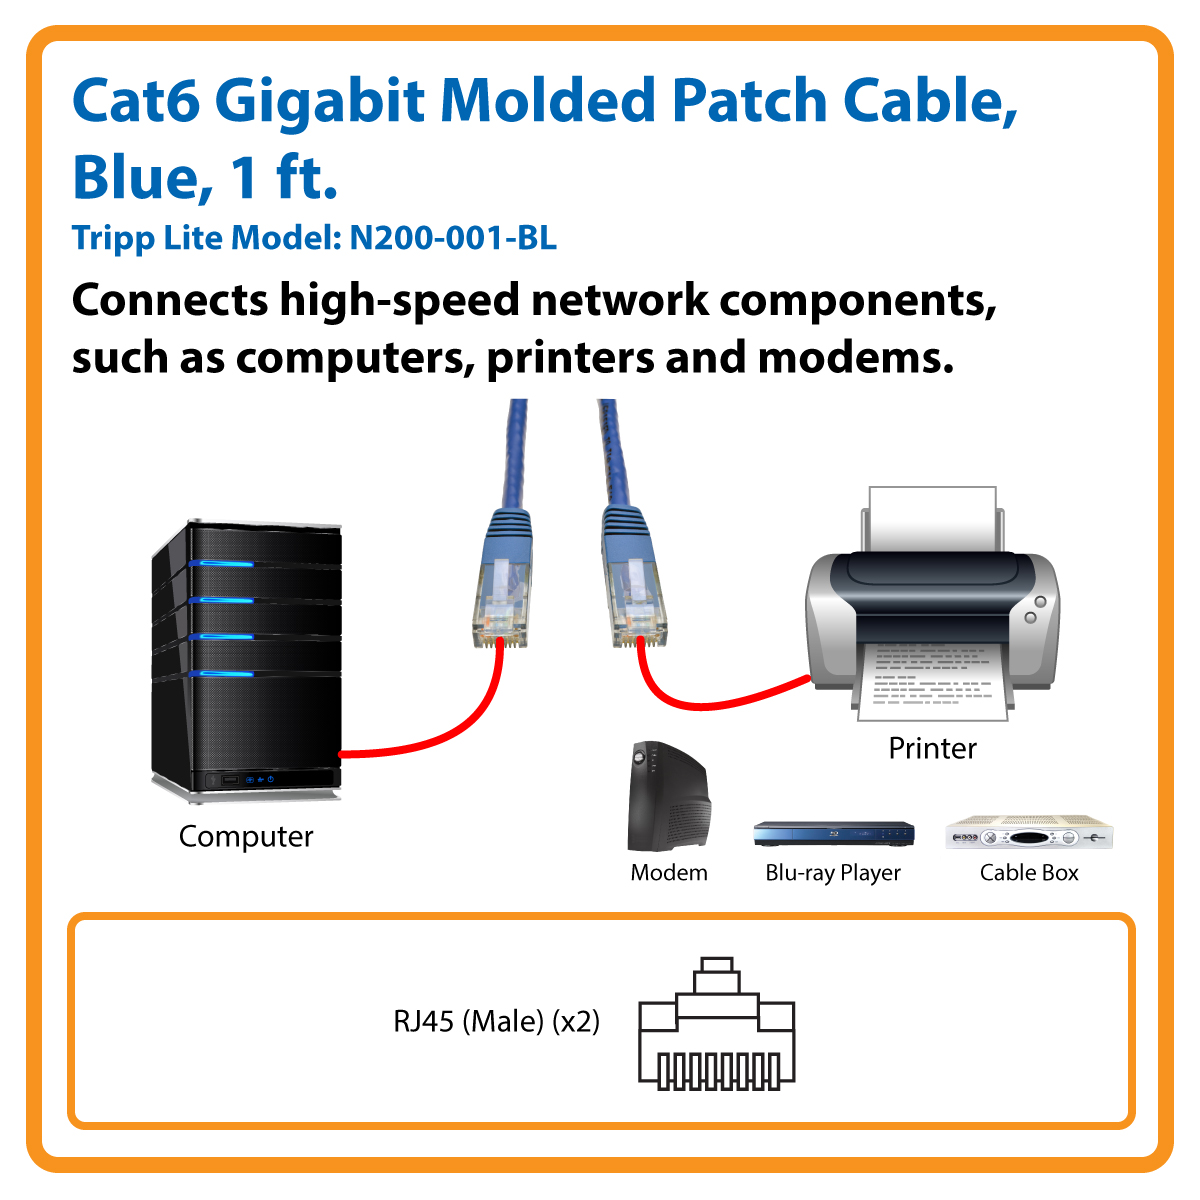 Tripp Lite 1ft Cat6 Gigabit Molded Patch Cable Rj45 M 550mhz 24 Wiring Diagram On Hi Power Lightning Protector Jacks Awg Blue N200 001 Bl Networking Cables